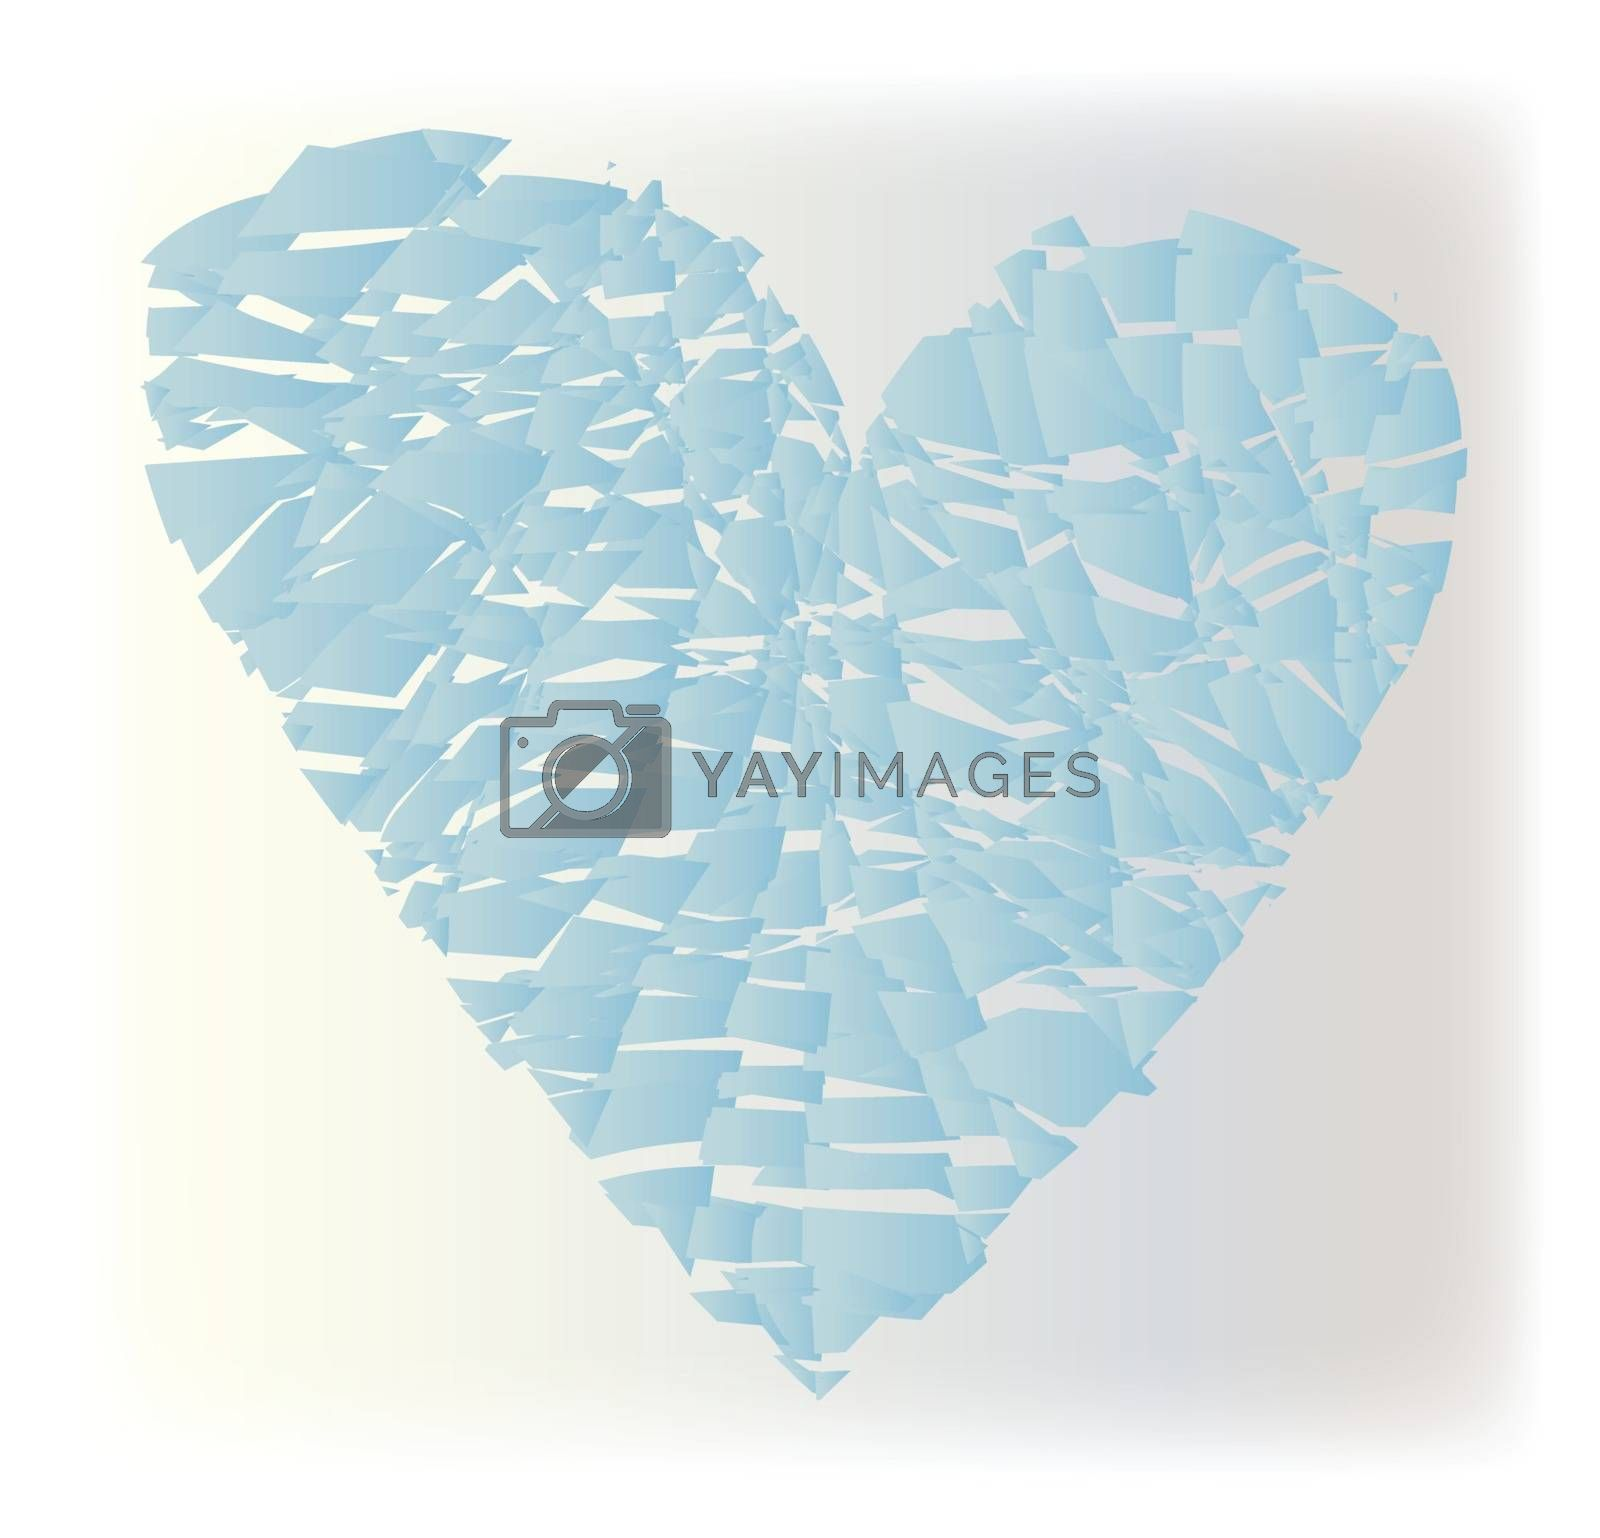 An abstract heart of shatterd glass over a white background